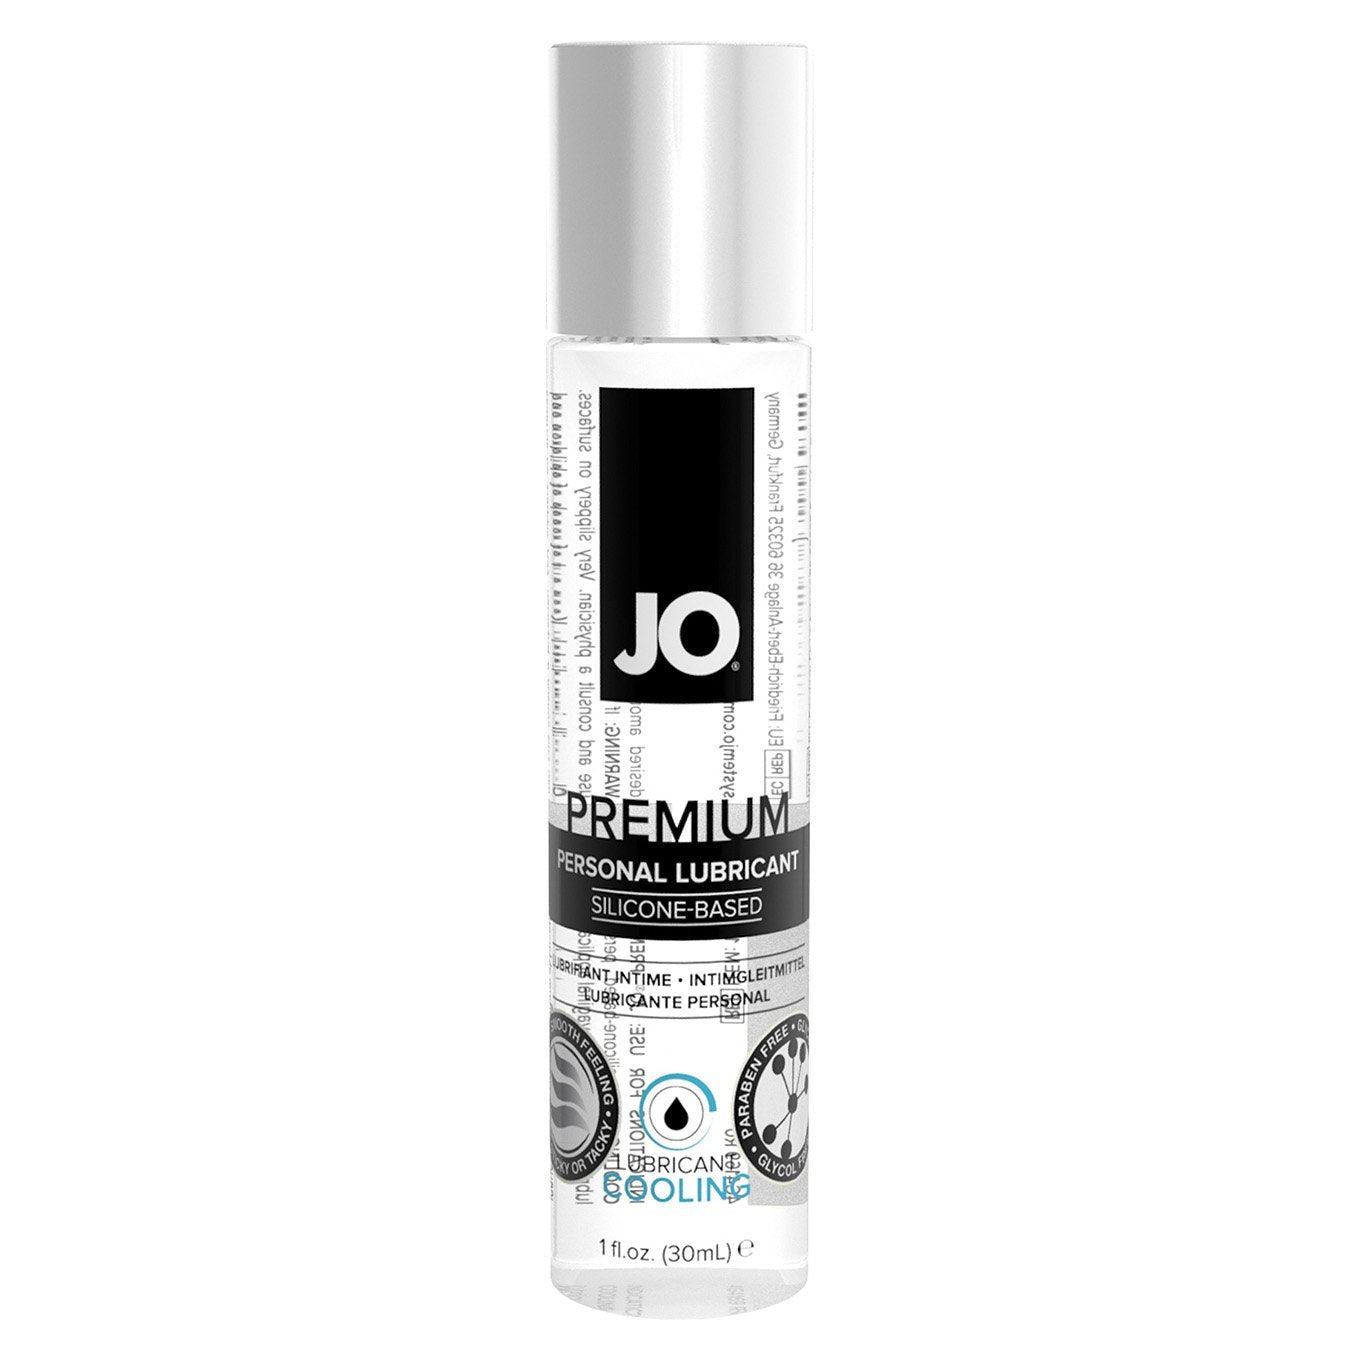 System JO - Premium Silicone Lubricant 30 ml (Cooling) Lube (Silicone Based) Singapore